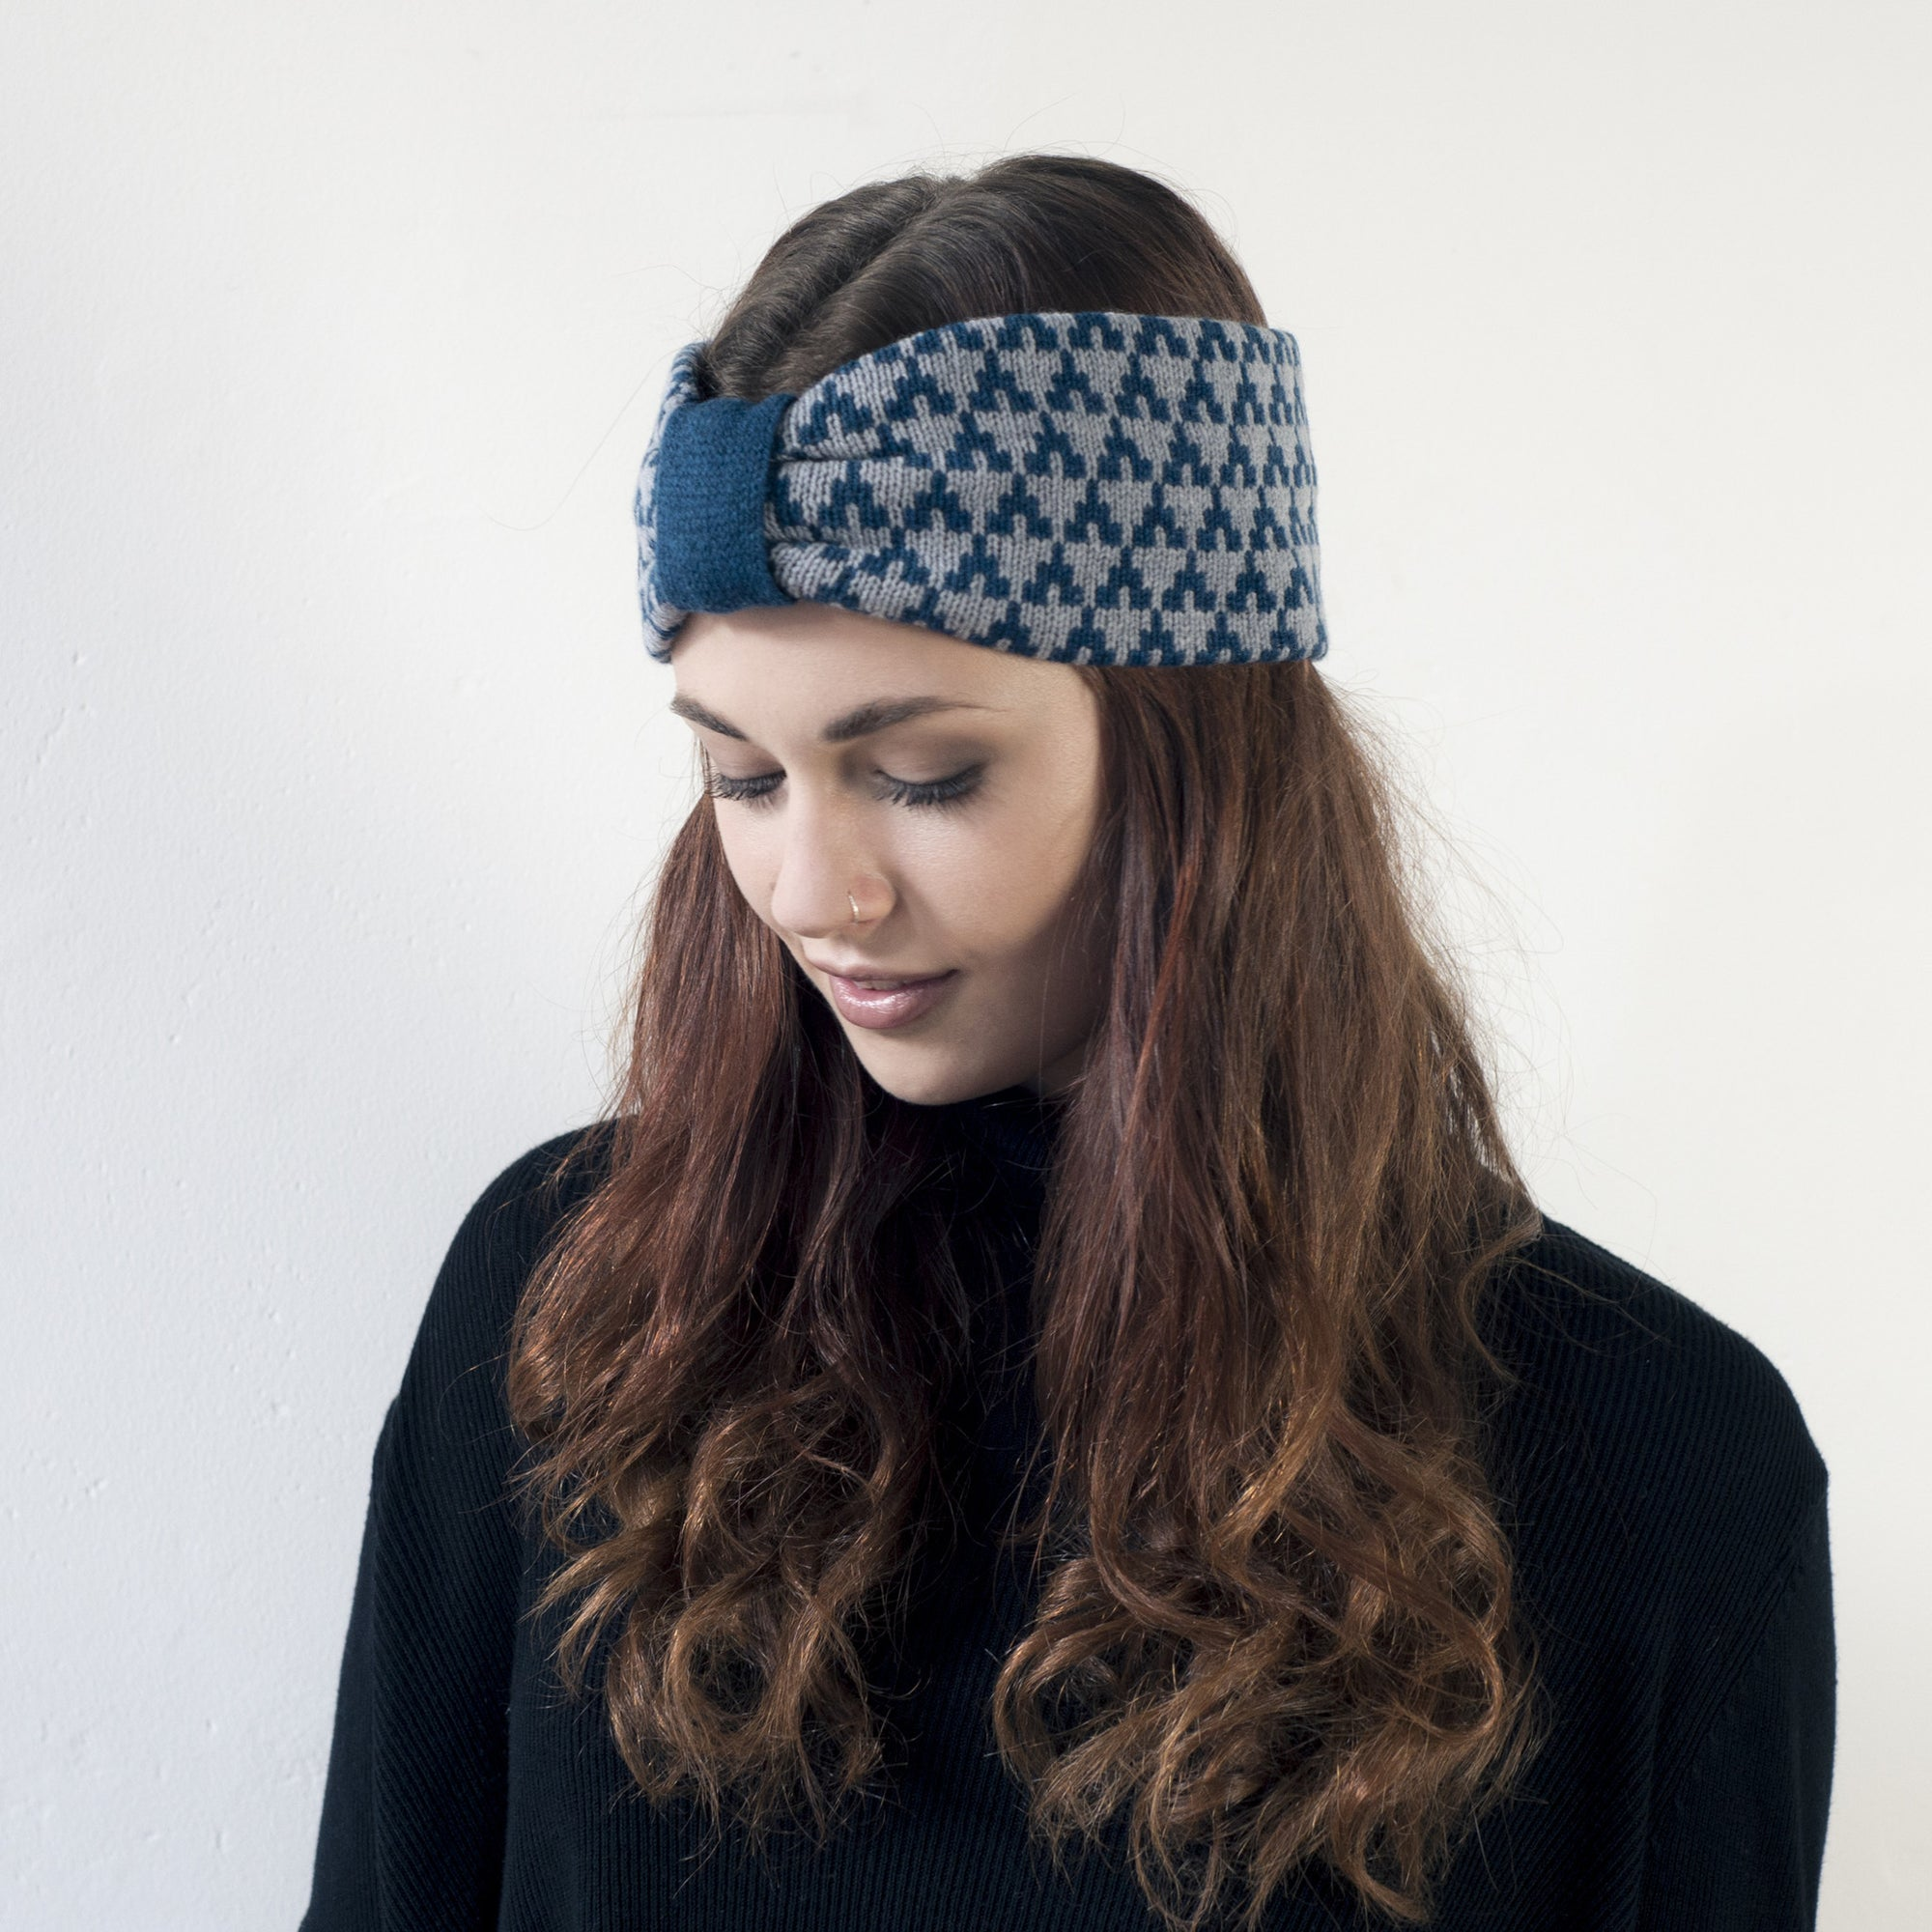 Arrow knitted headband - diesel and seal